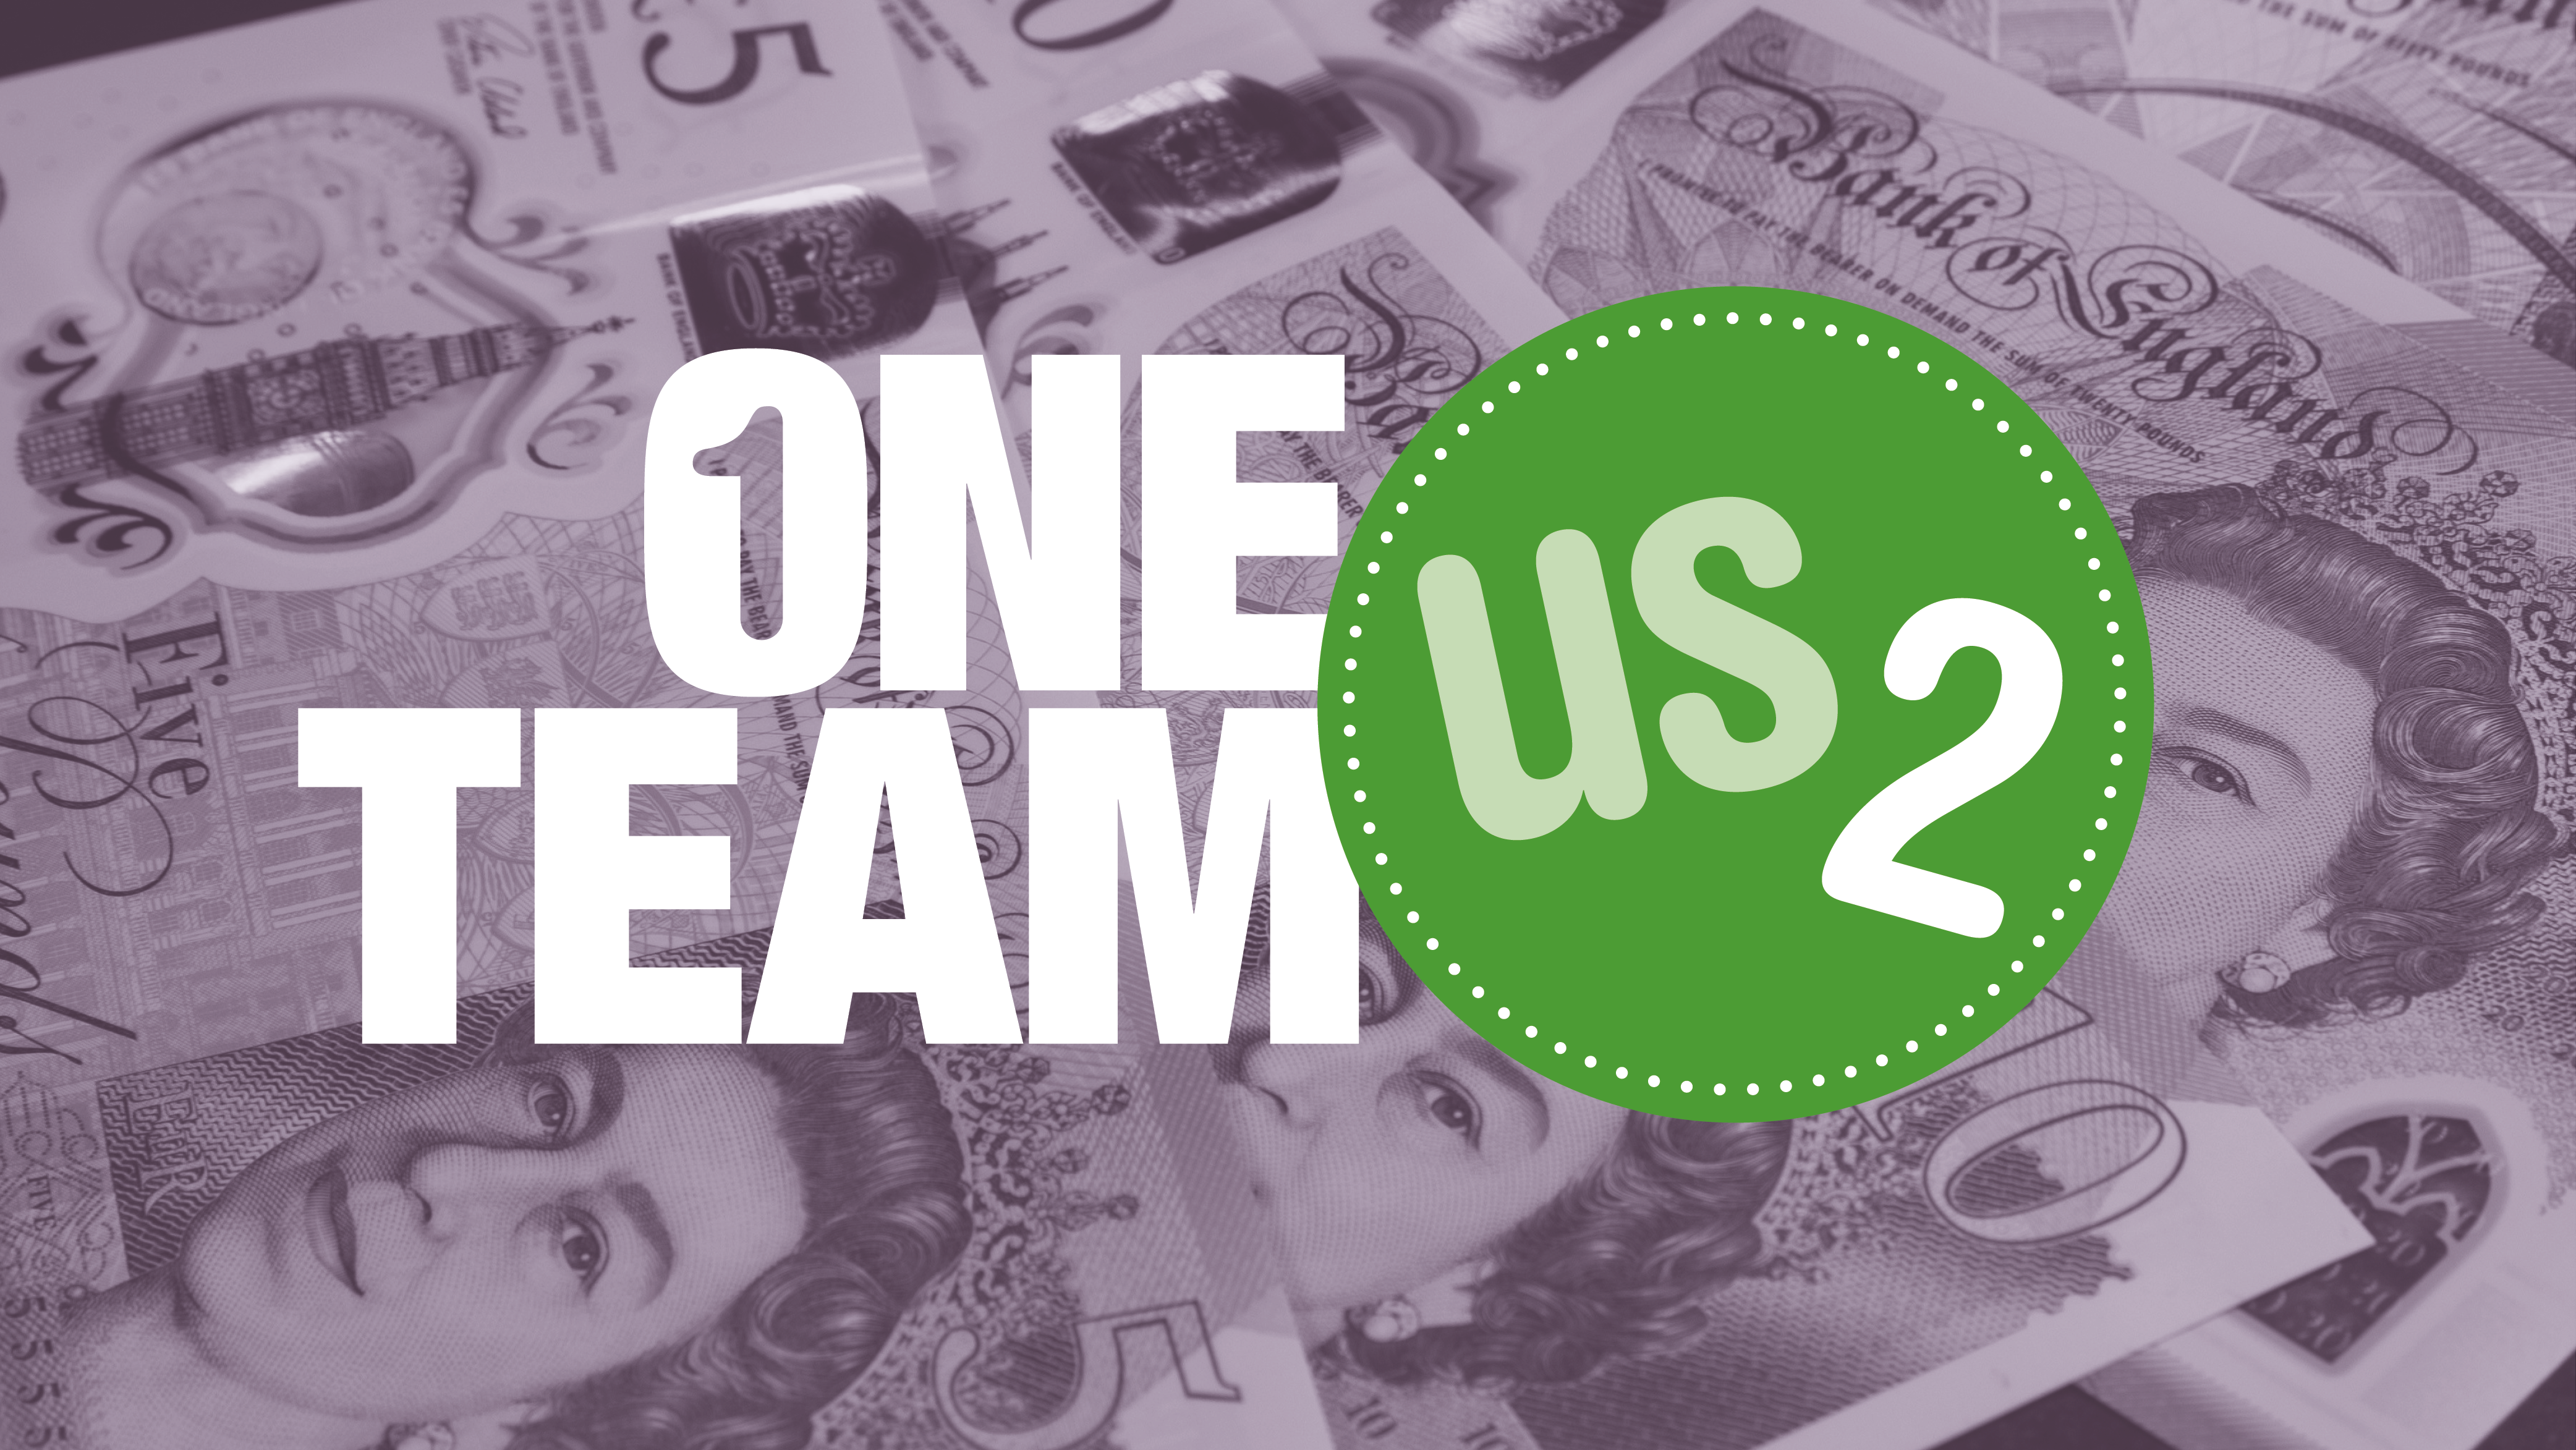 One Team Us2 logo, overlaid on an image of banknotes